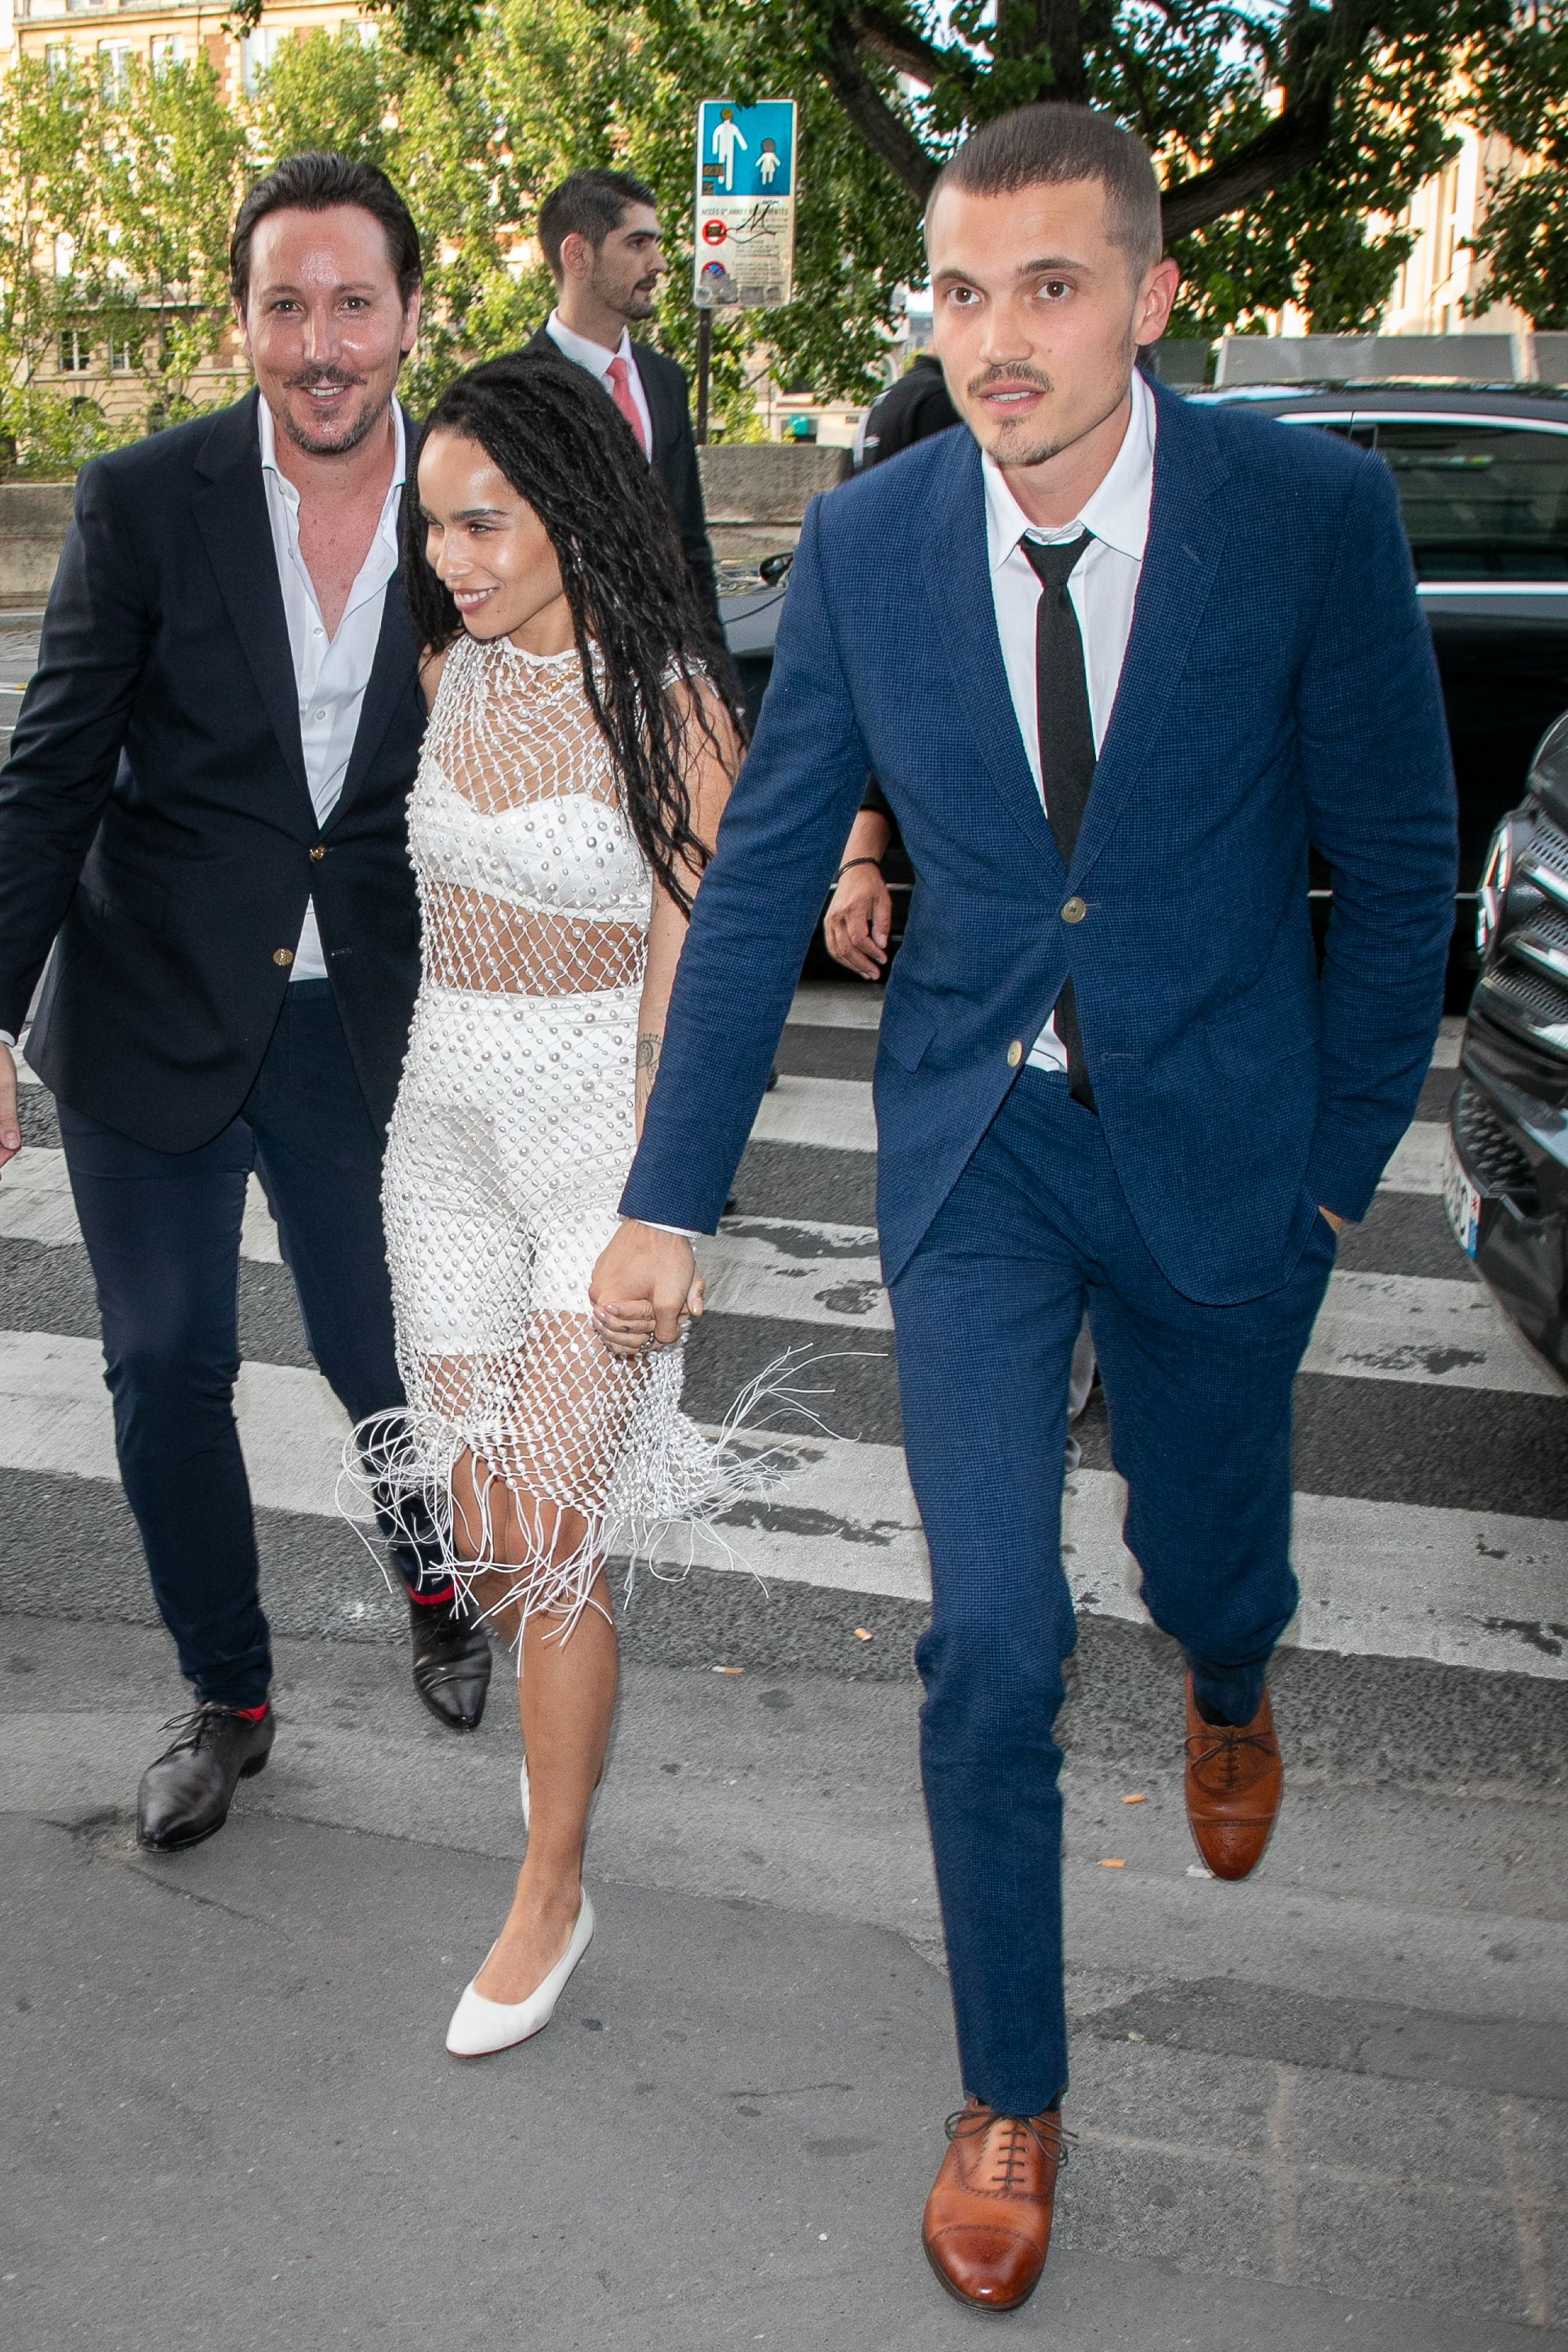 Zoë Kravitz's Paris Wedding Attracted Half of Hollywood